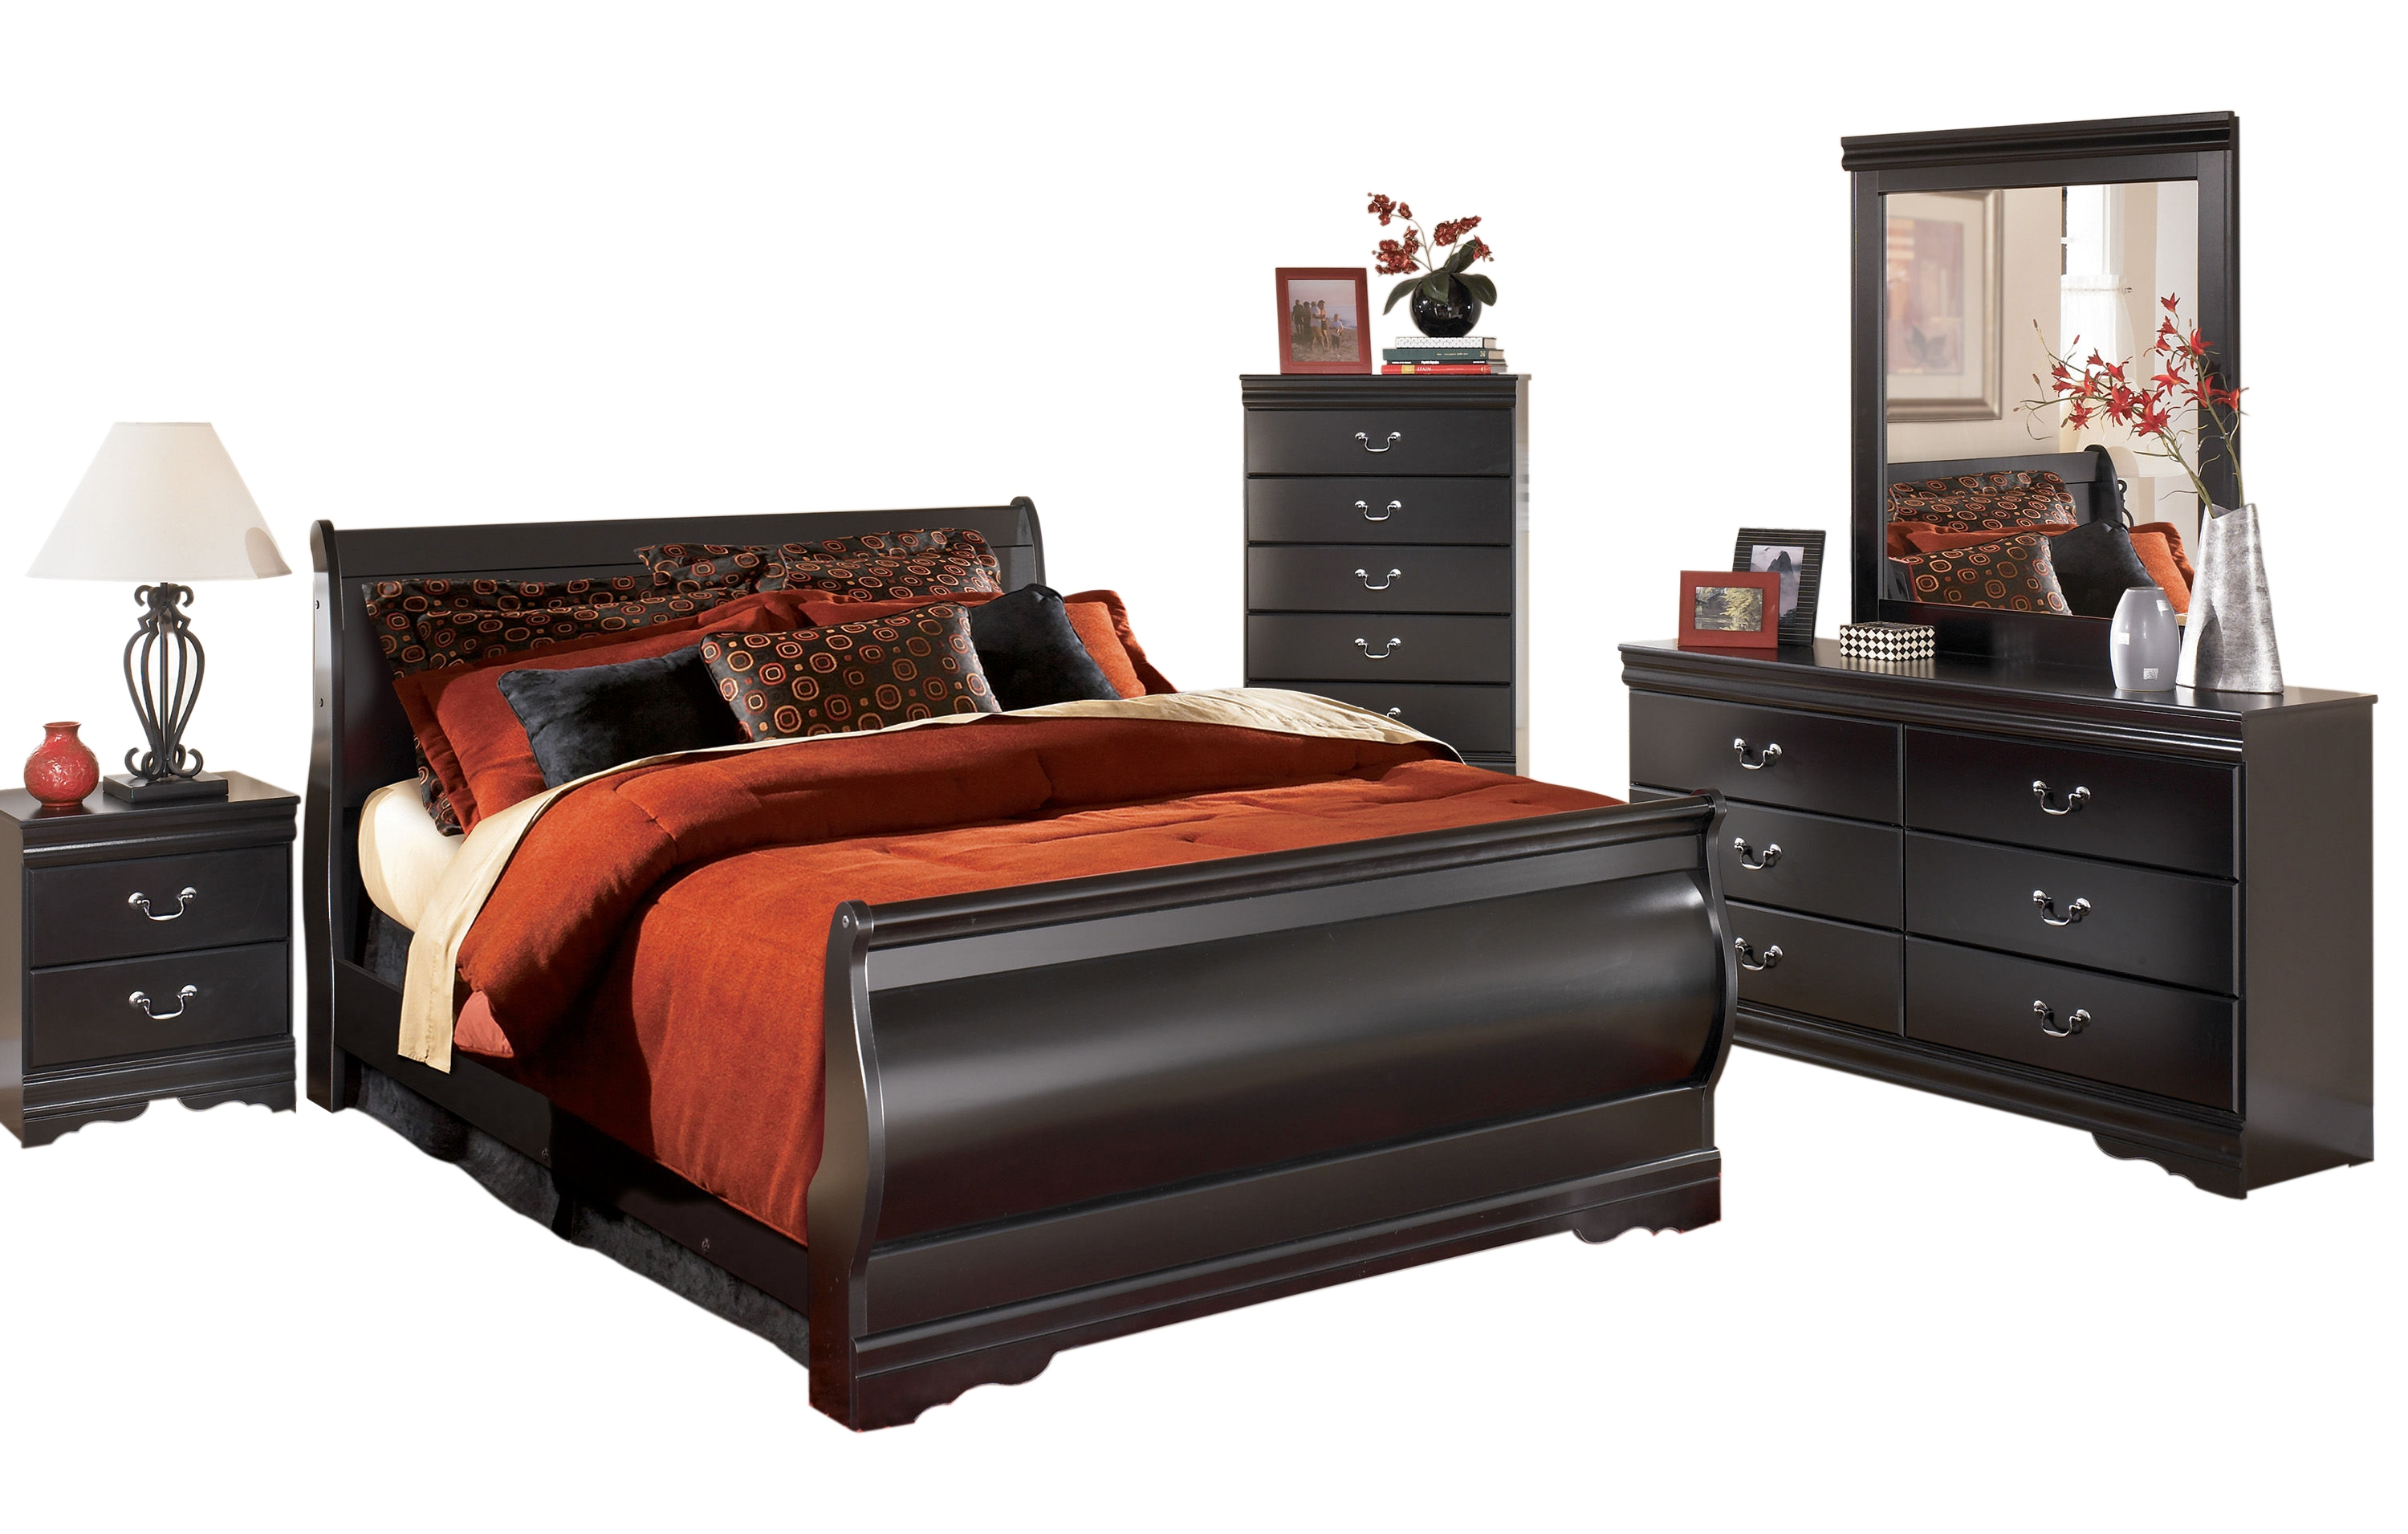 Ashley furniture huey vineyard master bedroom set the classy home No dresser in master bedroom